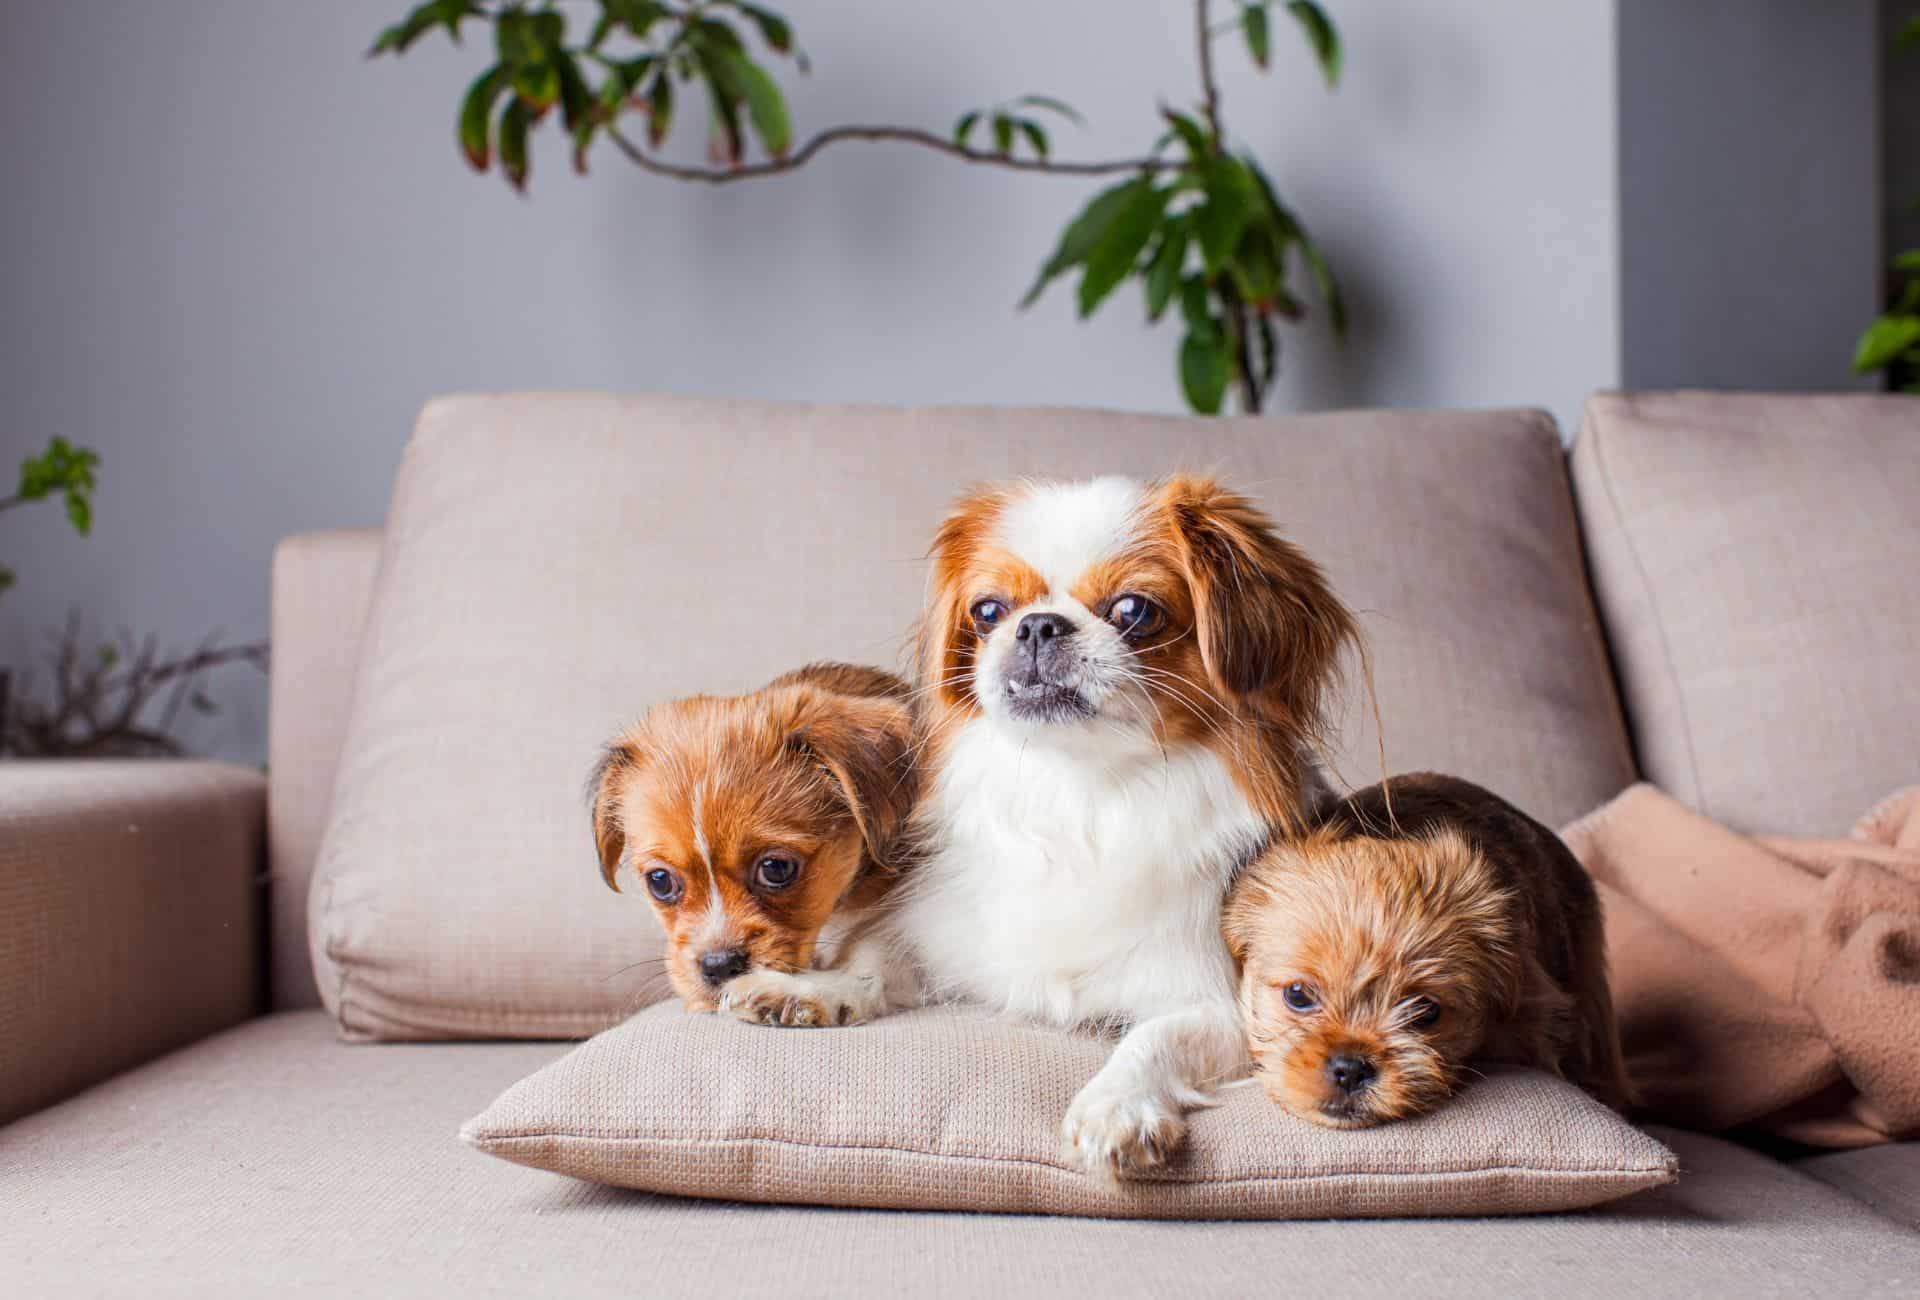 Pekingese lays on the couch alongside two other dogs.